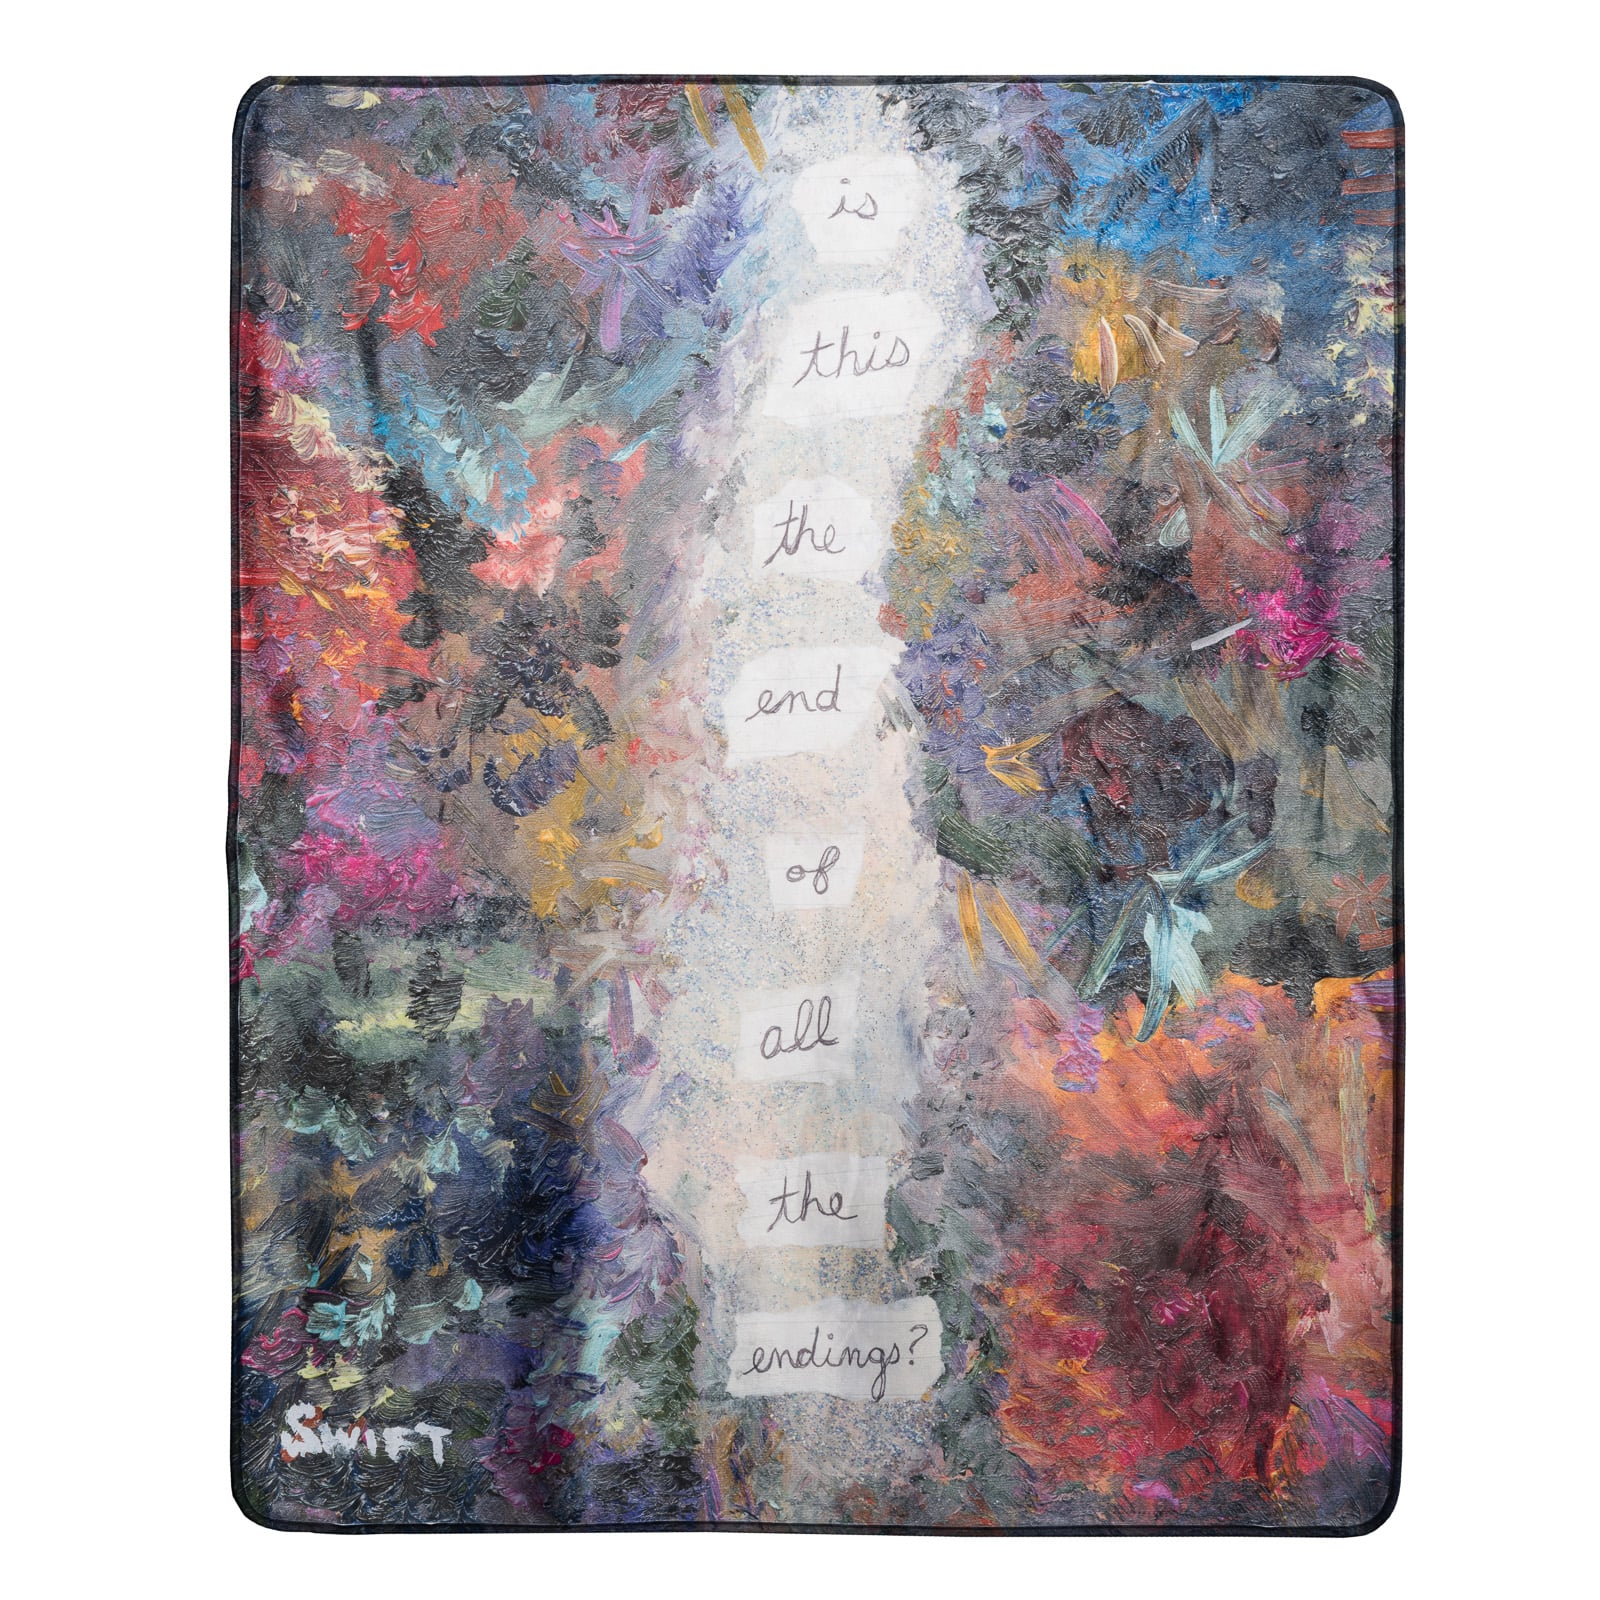 Blanket With Poem And Painting Design 75 Taylor Swift Gifts To Help You Get Ready For The Reputation Stadium Tour Popsugar Entertainment Photo 37